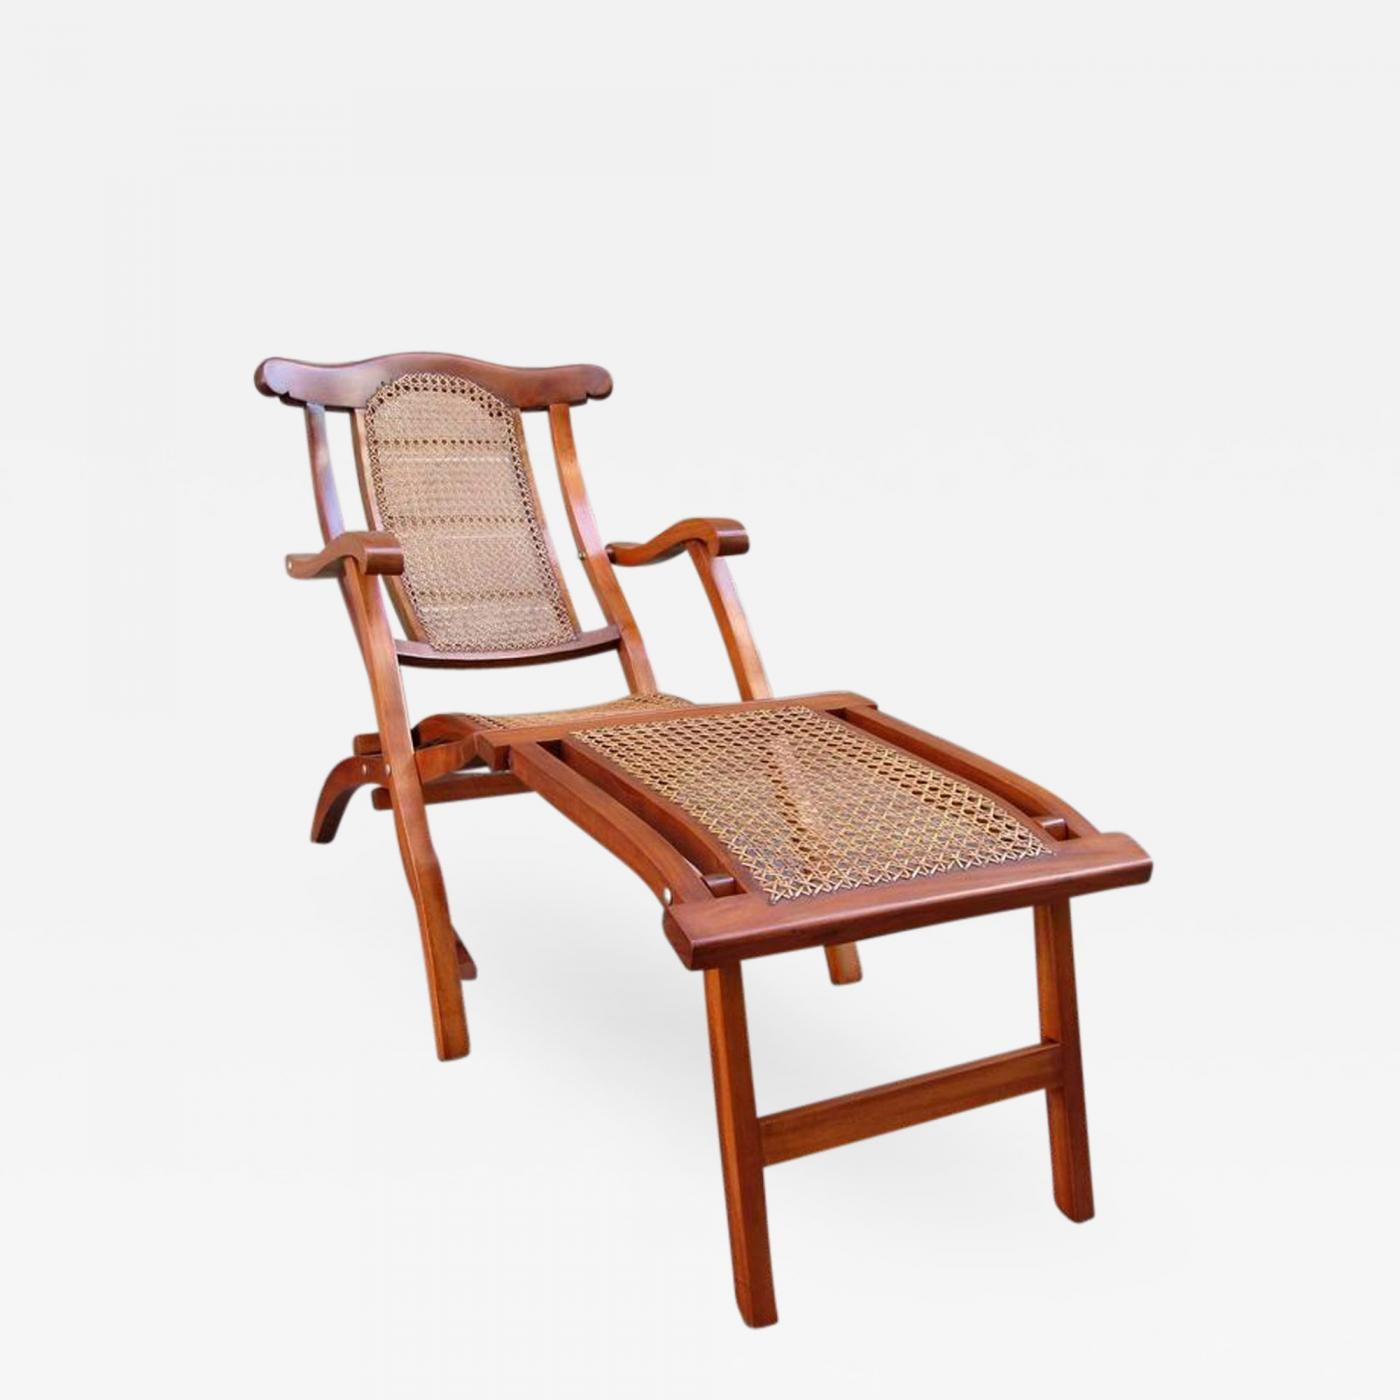 Early 20th Century Caribbean Martinique Mahogany And Cane Folding Deck Chair